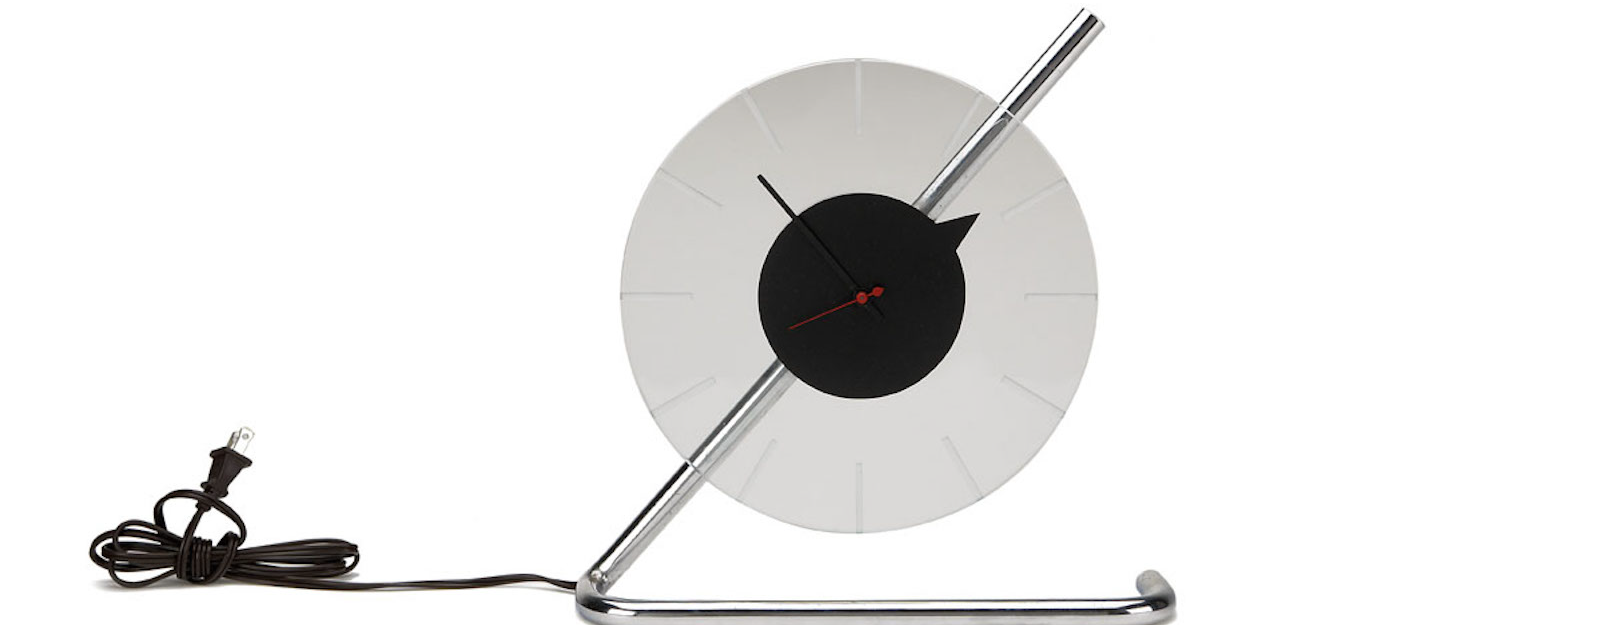 The Herman Miller Clock You Don't Know - Core77